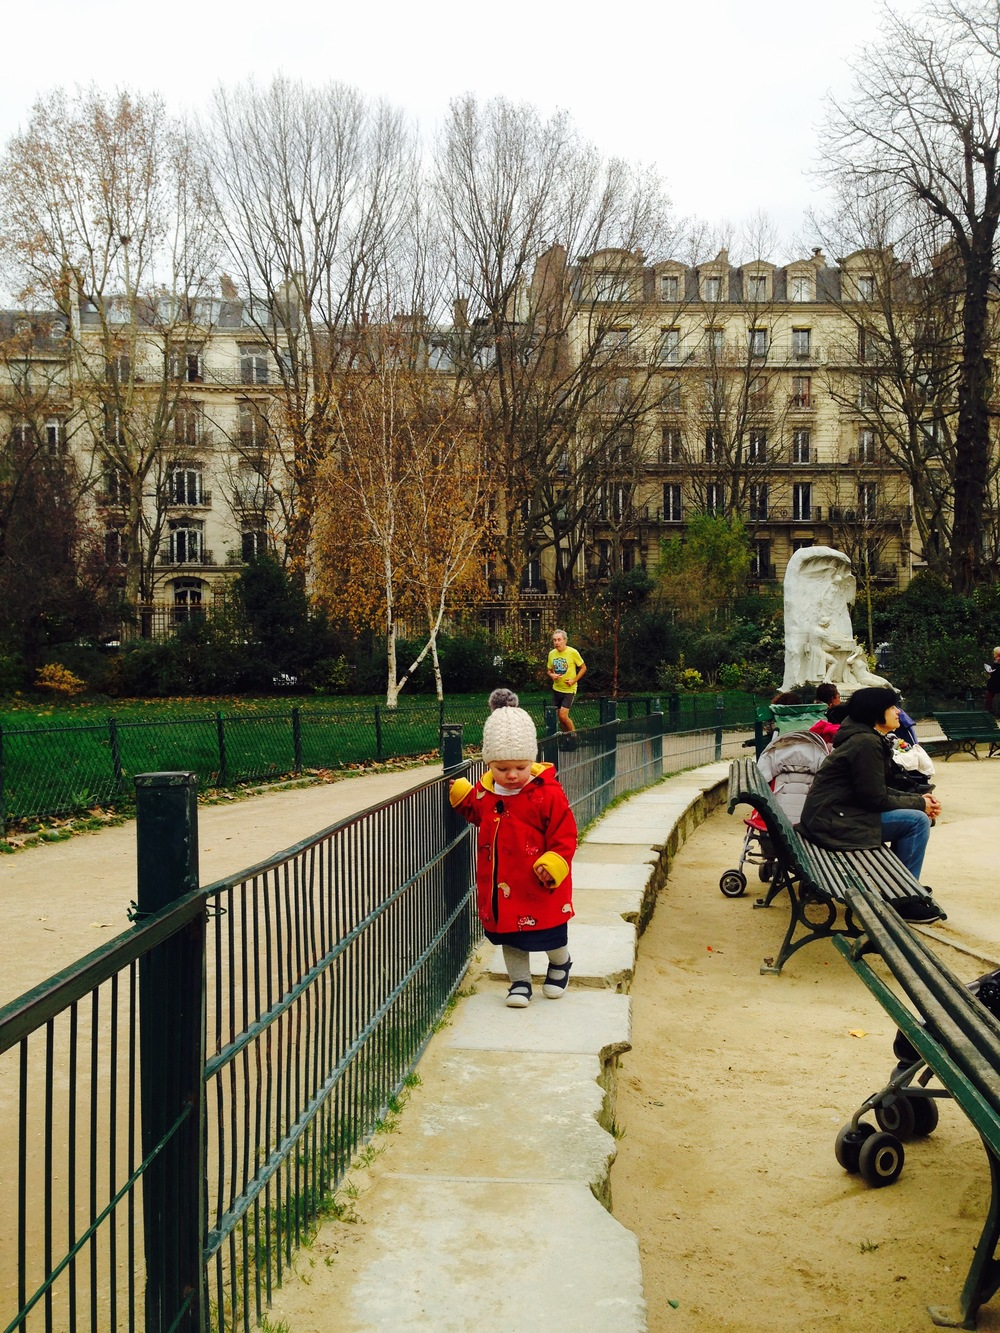 Parc Monceau has a great playground and running track